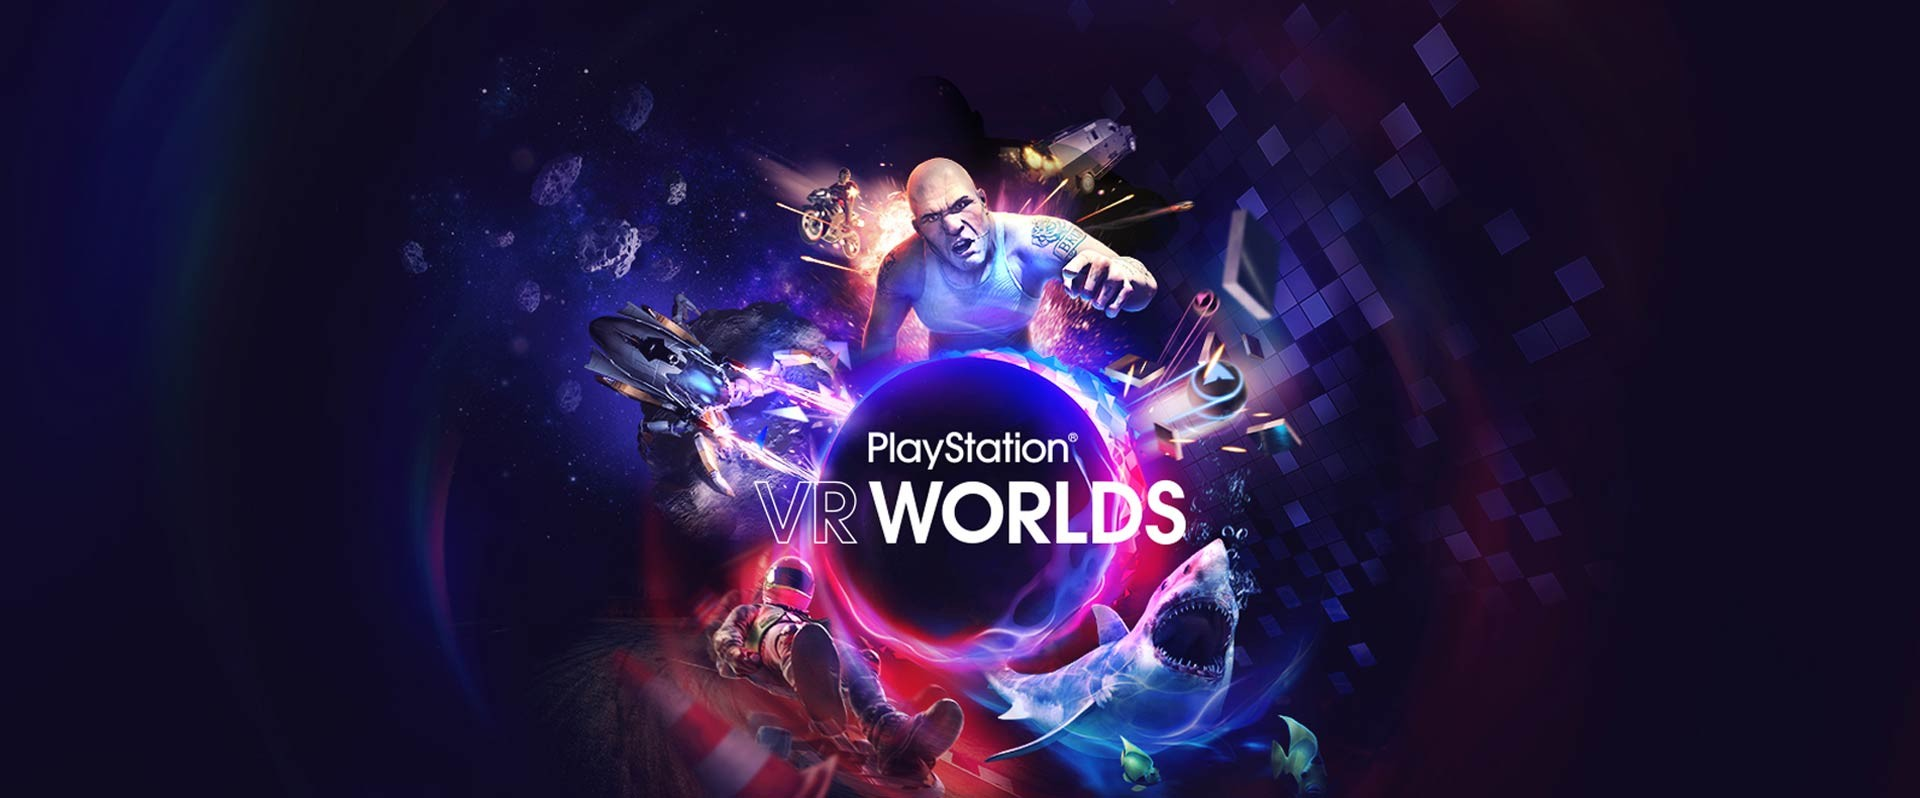 psvr-world-banner